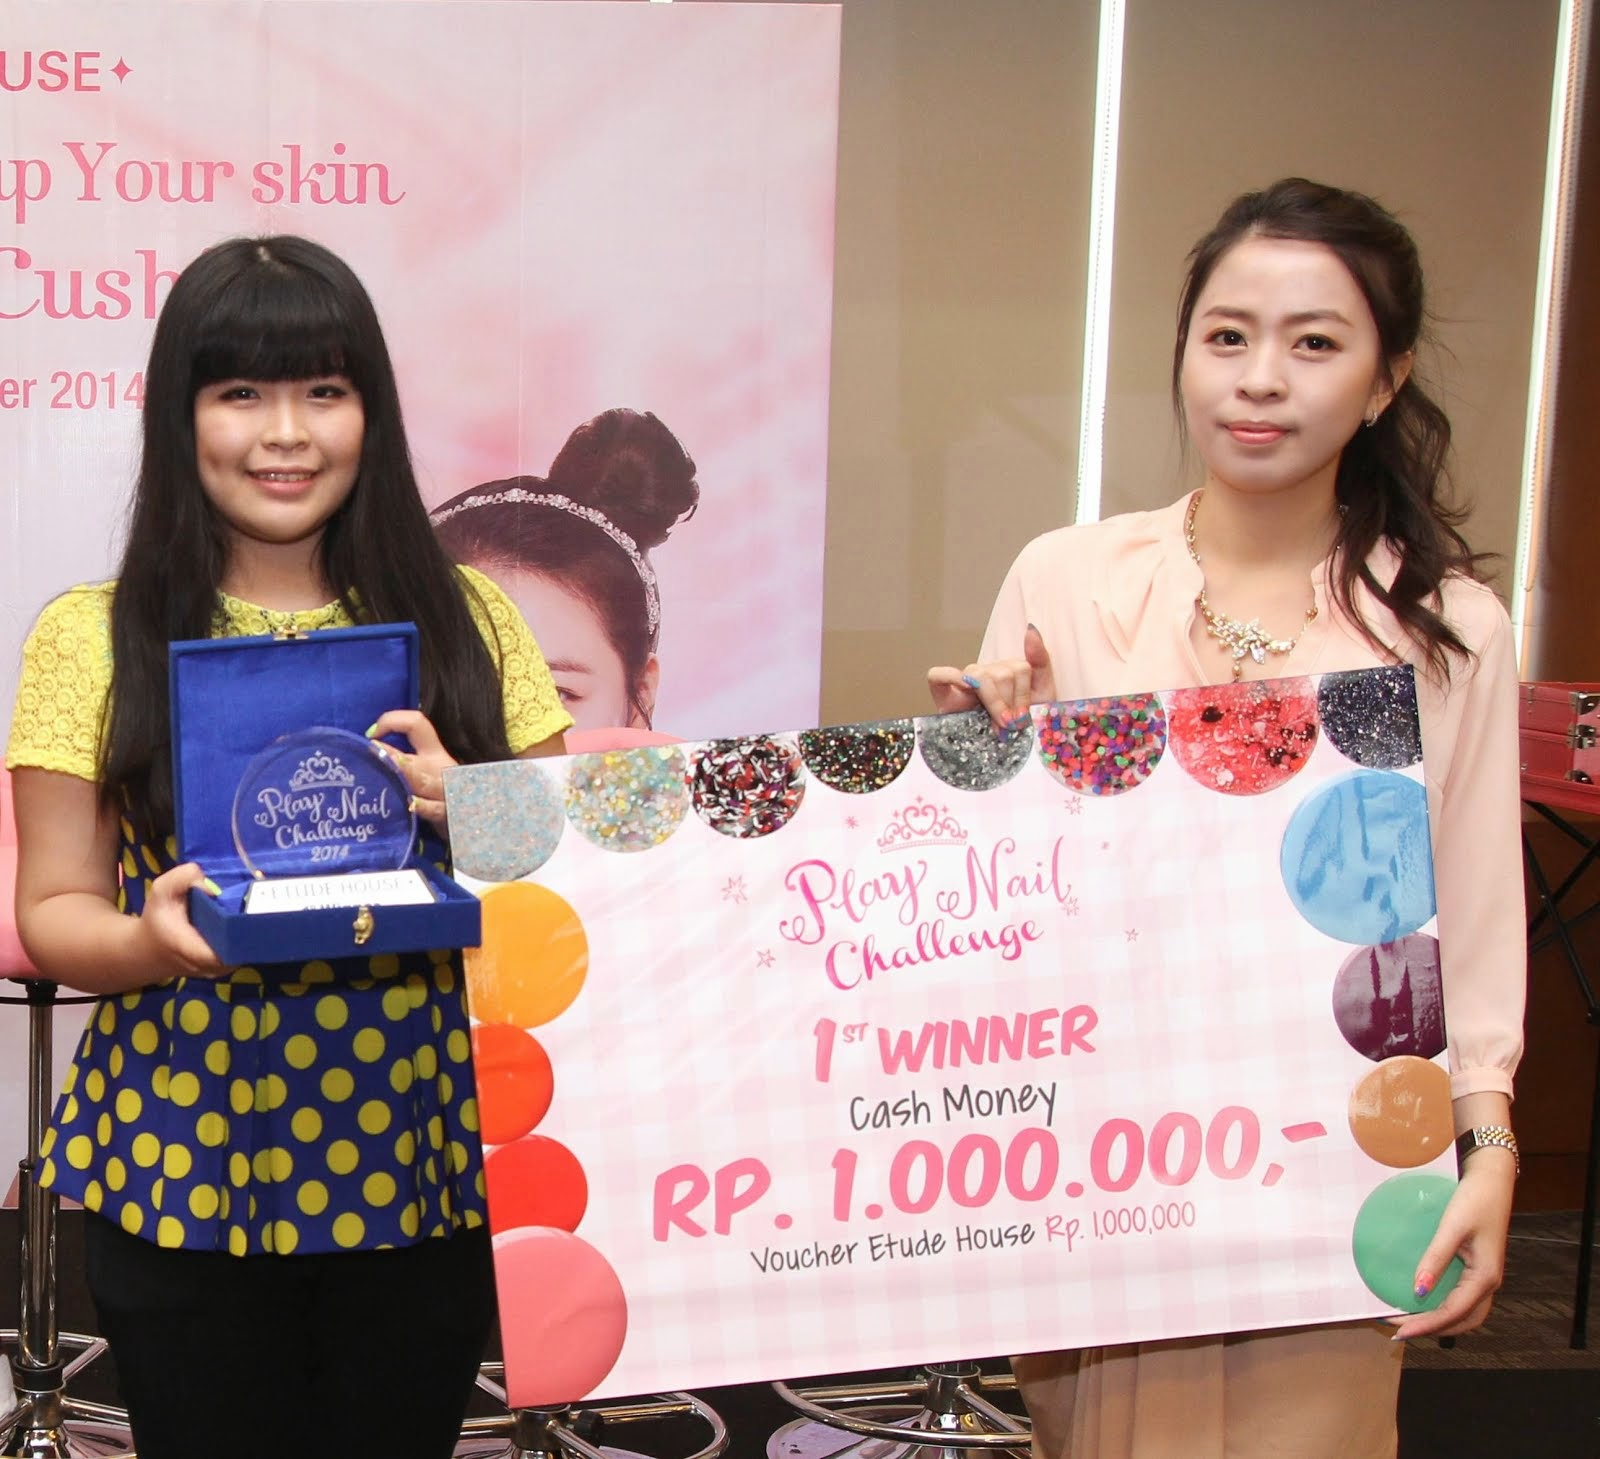 WINNER of ETUDE HOUSE INDONESIA